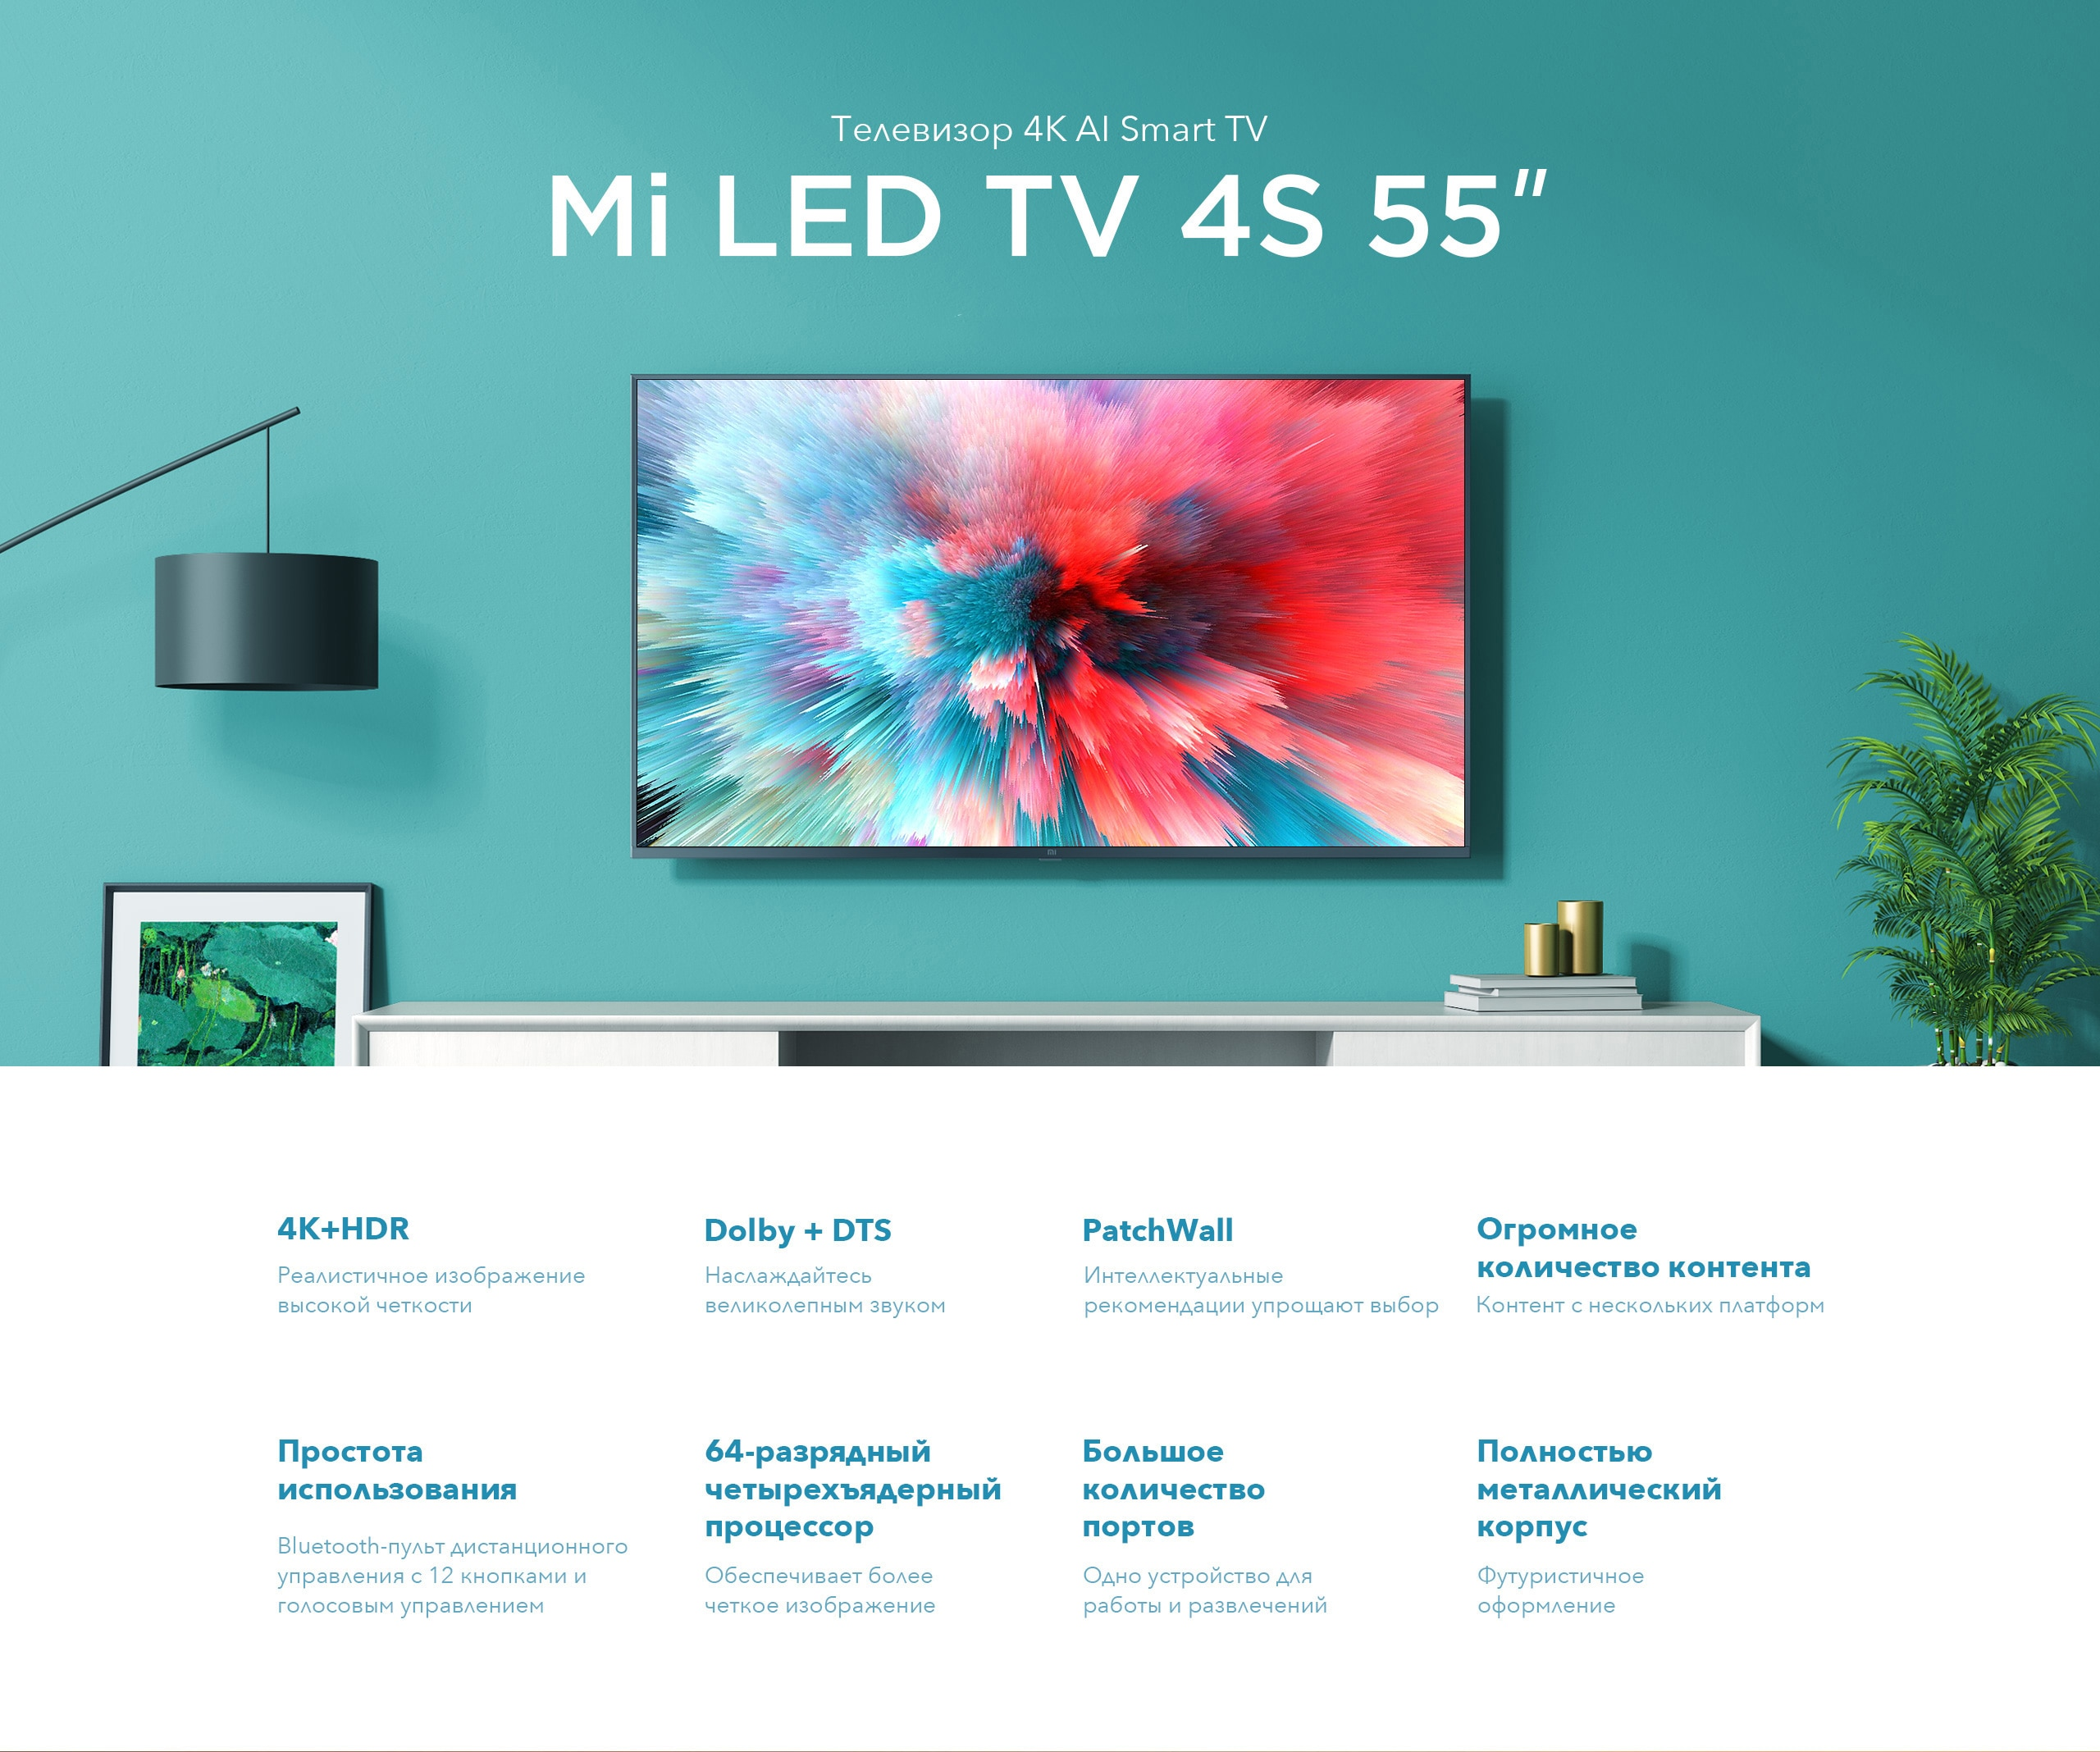 Television Xiaomi Mi TV Android Smart TV 4S 55 inches Full 4K HDR Screen TV 2GB+8GB Dolby DVB-T2 Global version TV